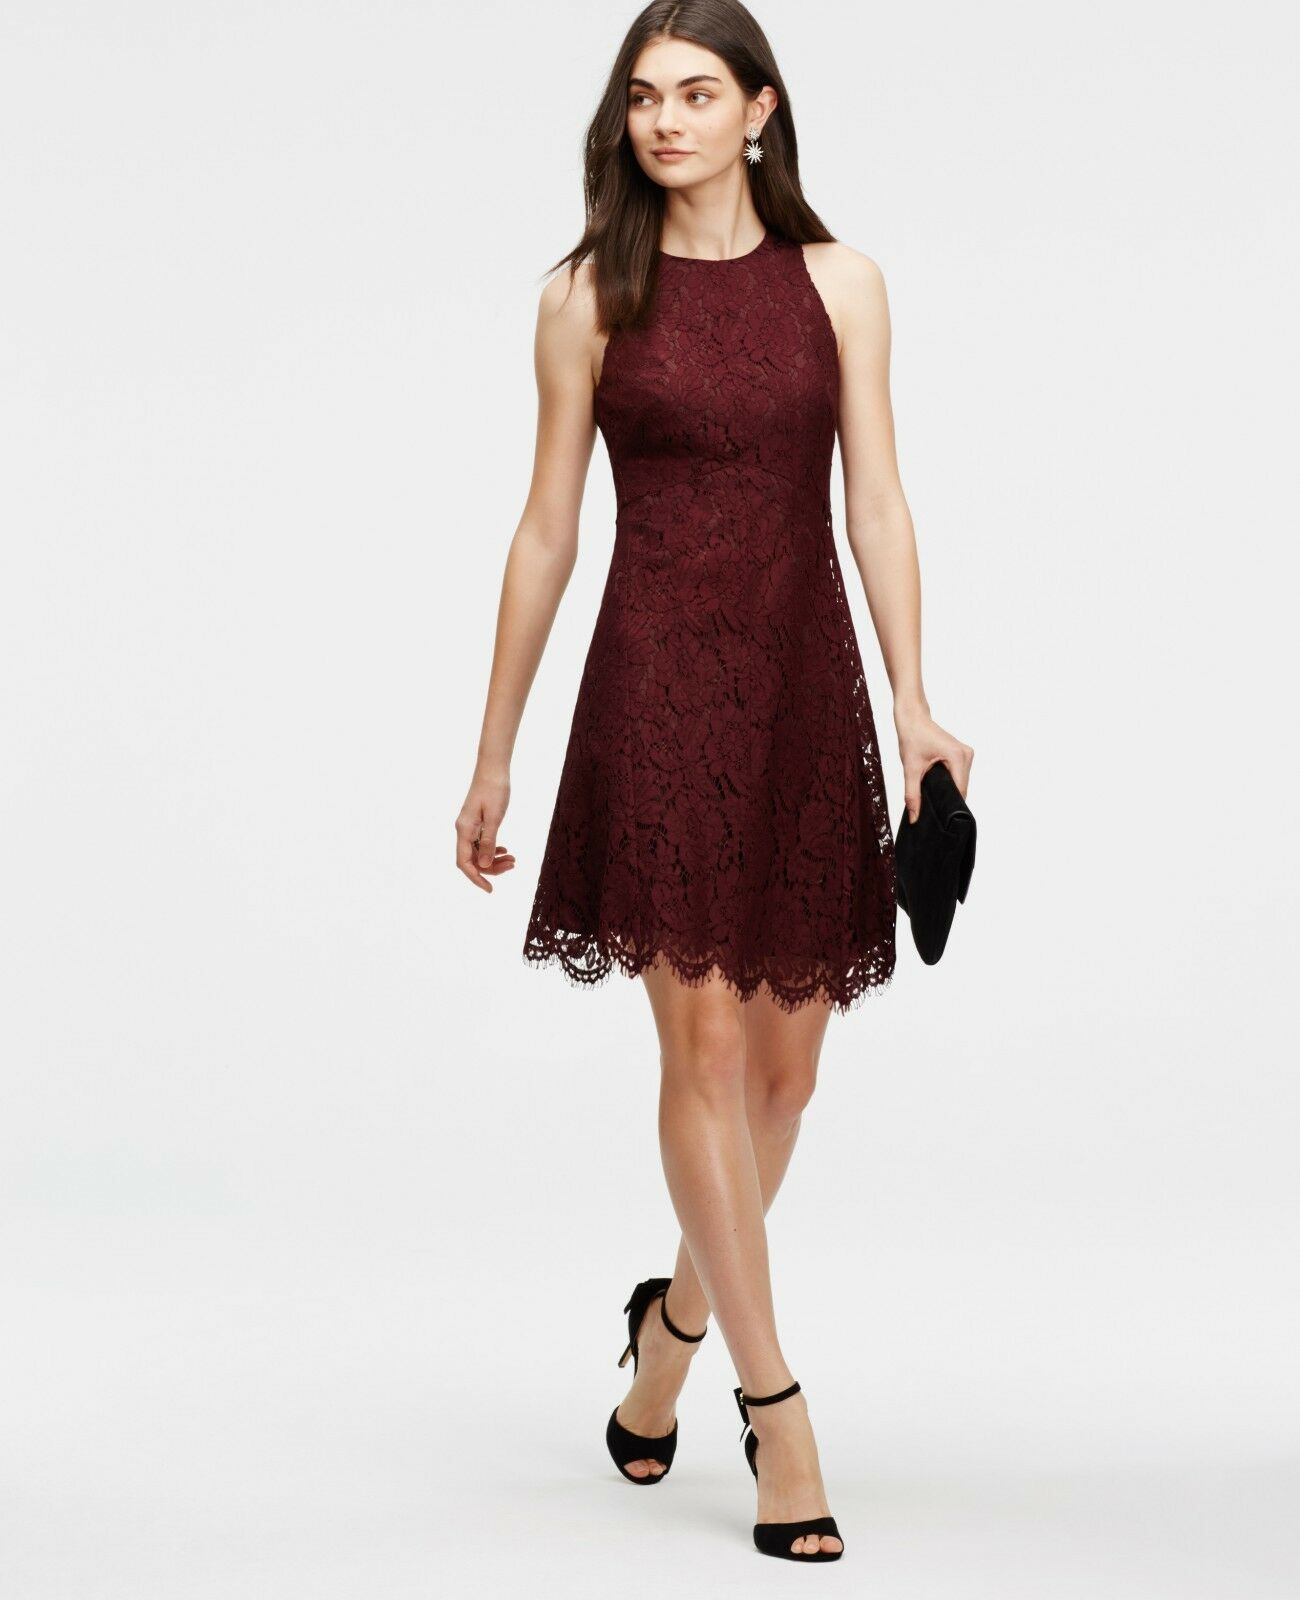 Brand New Ann Taylor Petite 0 Lace Flare Dress Dress Dress with tag - Classic Plum 1acacc